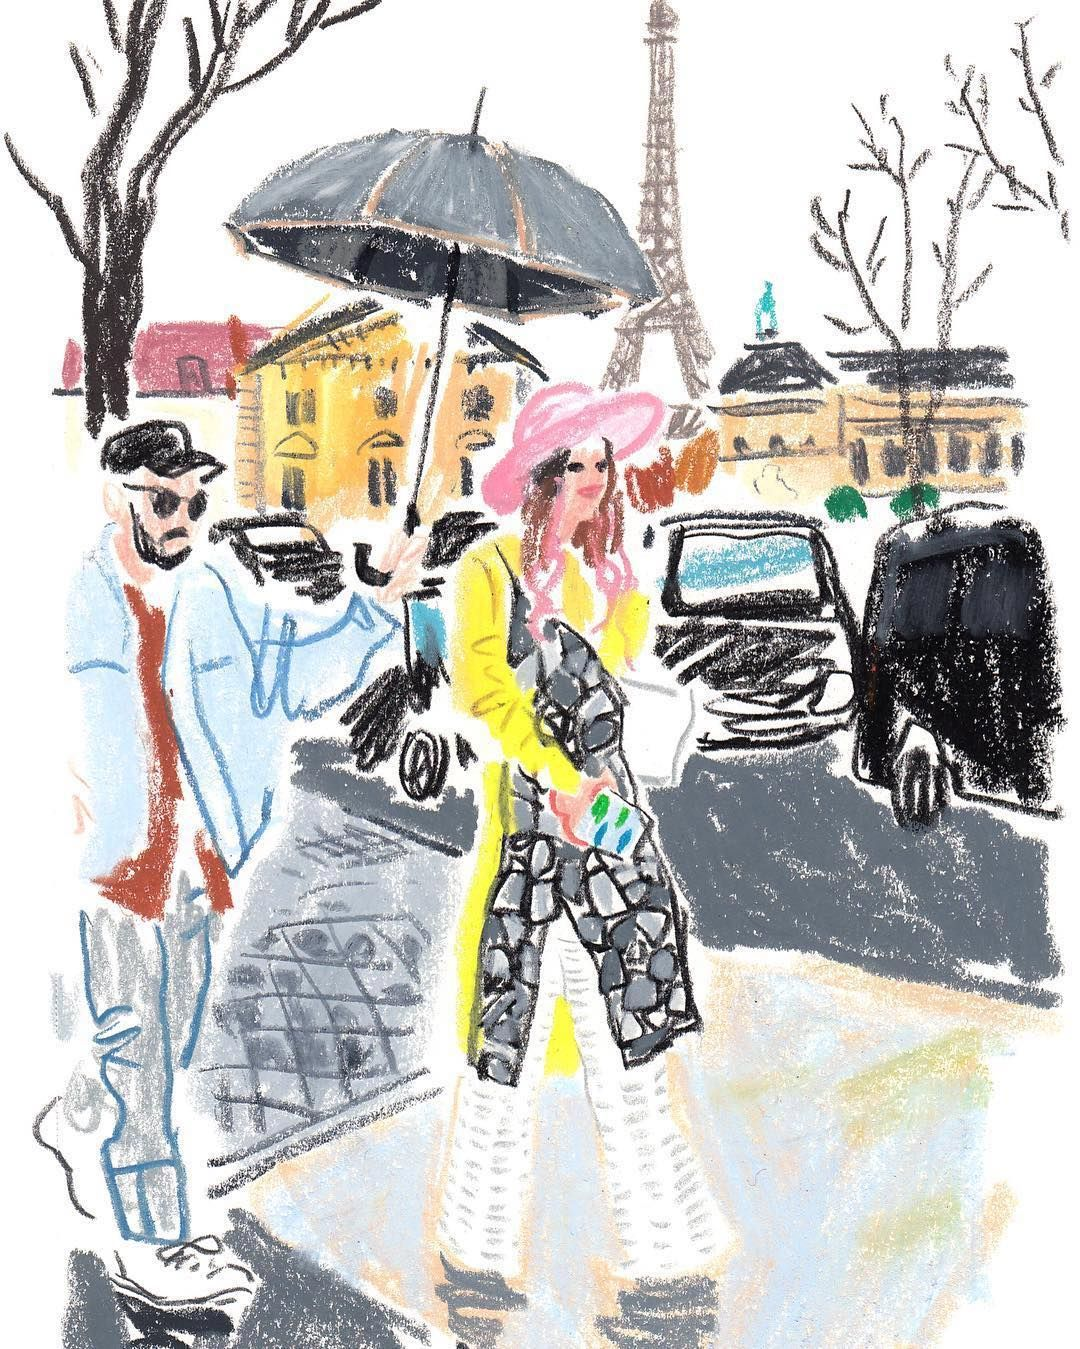 좋아요 422개 댓글 4개 Instagram의 Damien Florebert Cuypers Damienfcuypers 님 Daily Pfw Snapsketch For Tmagazine Illustration Illustration Sketches Drawings